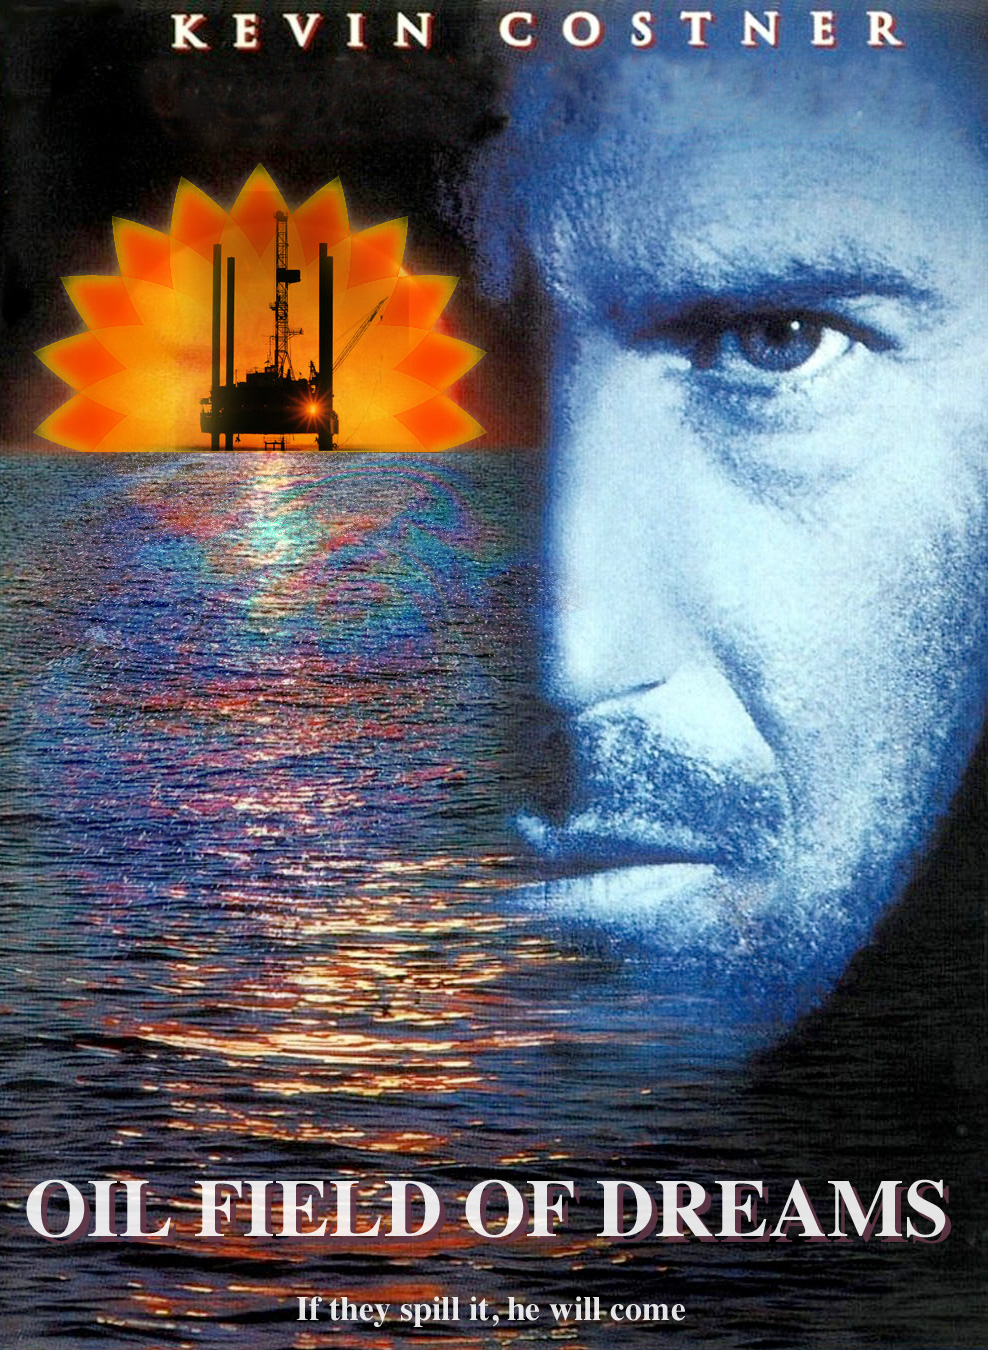 Kevin Costner, Oil Field of Dreams